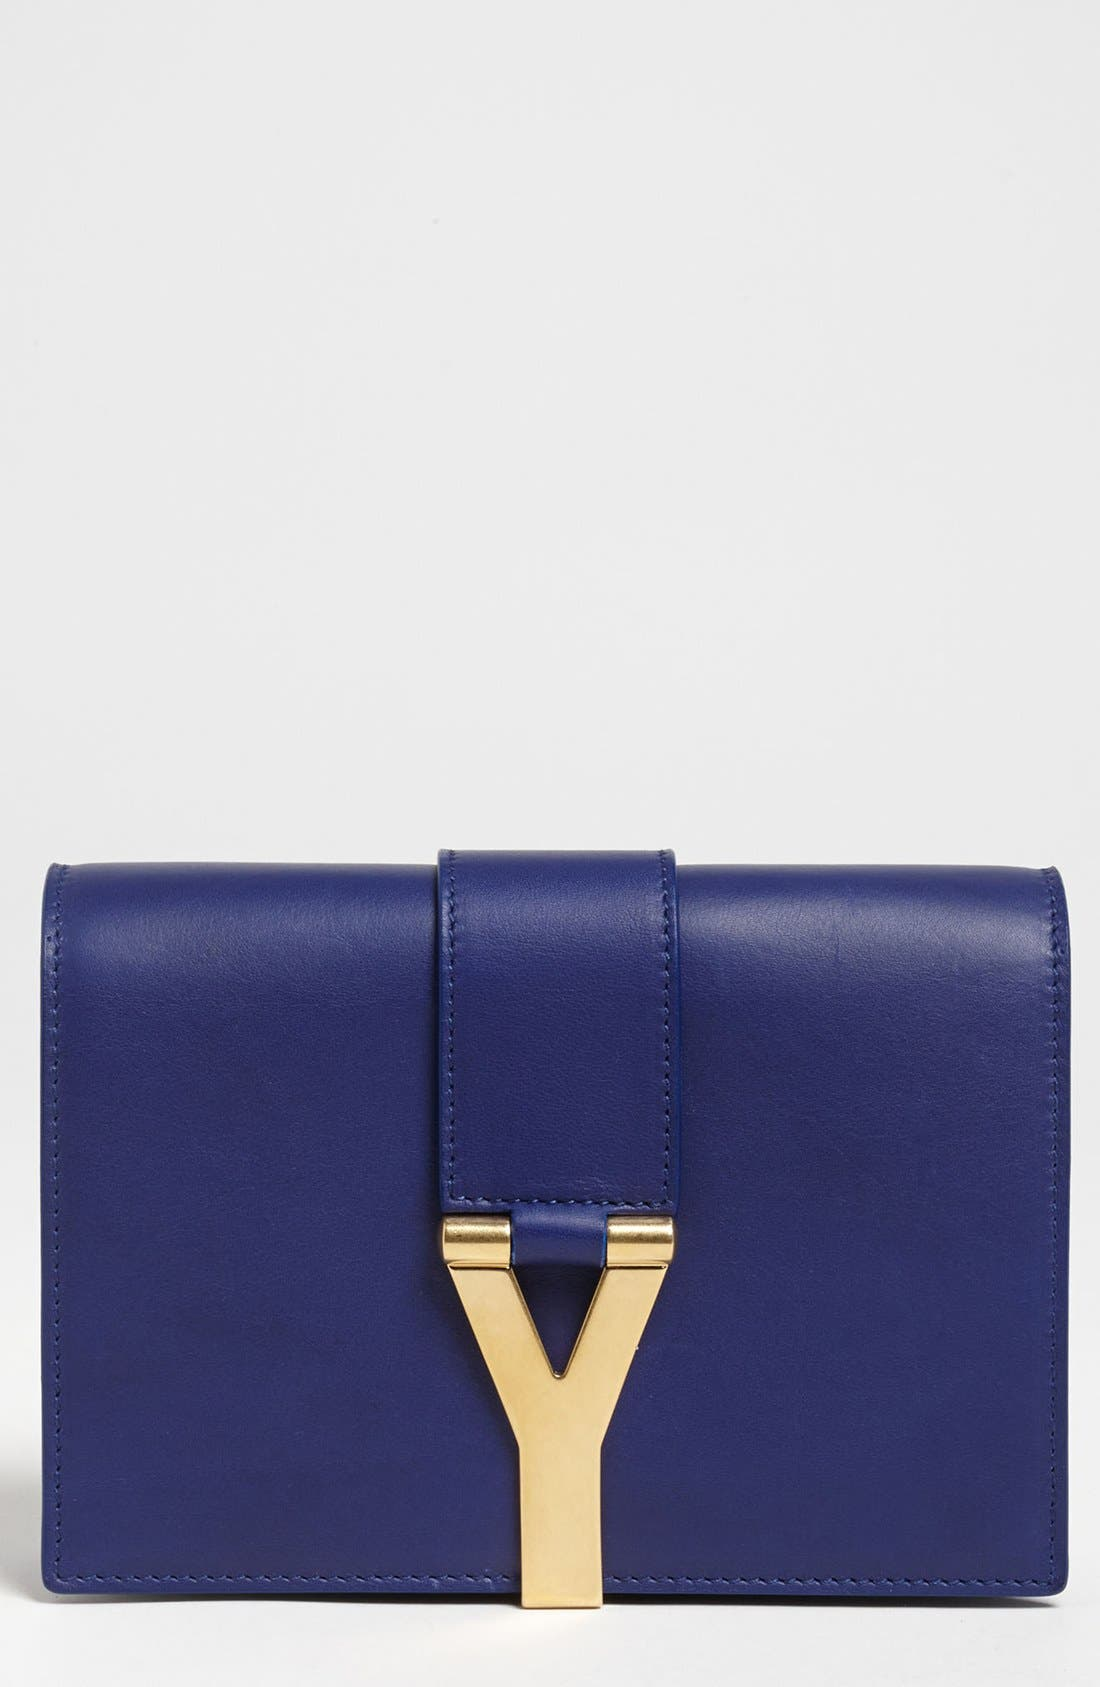 Main Image - Saint Laurent 'Y Chain - Mini' Leather Handbag